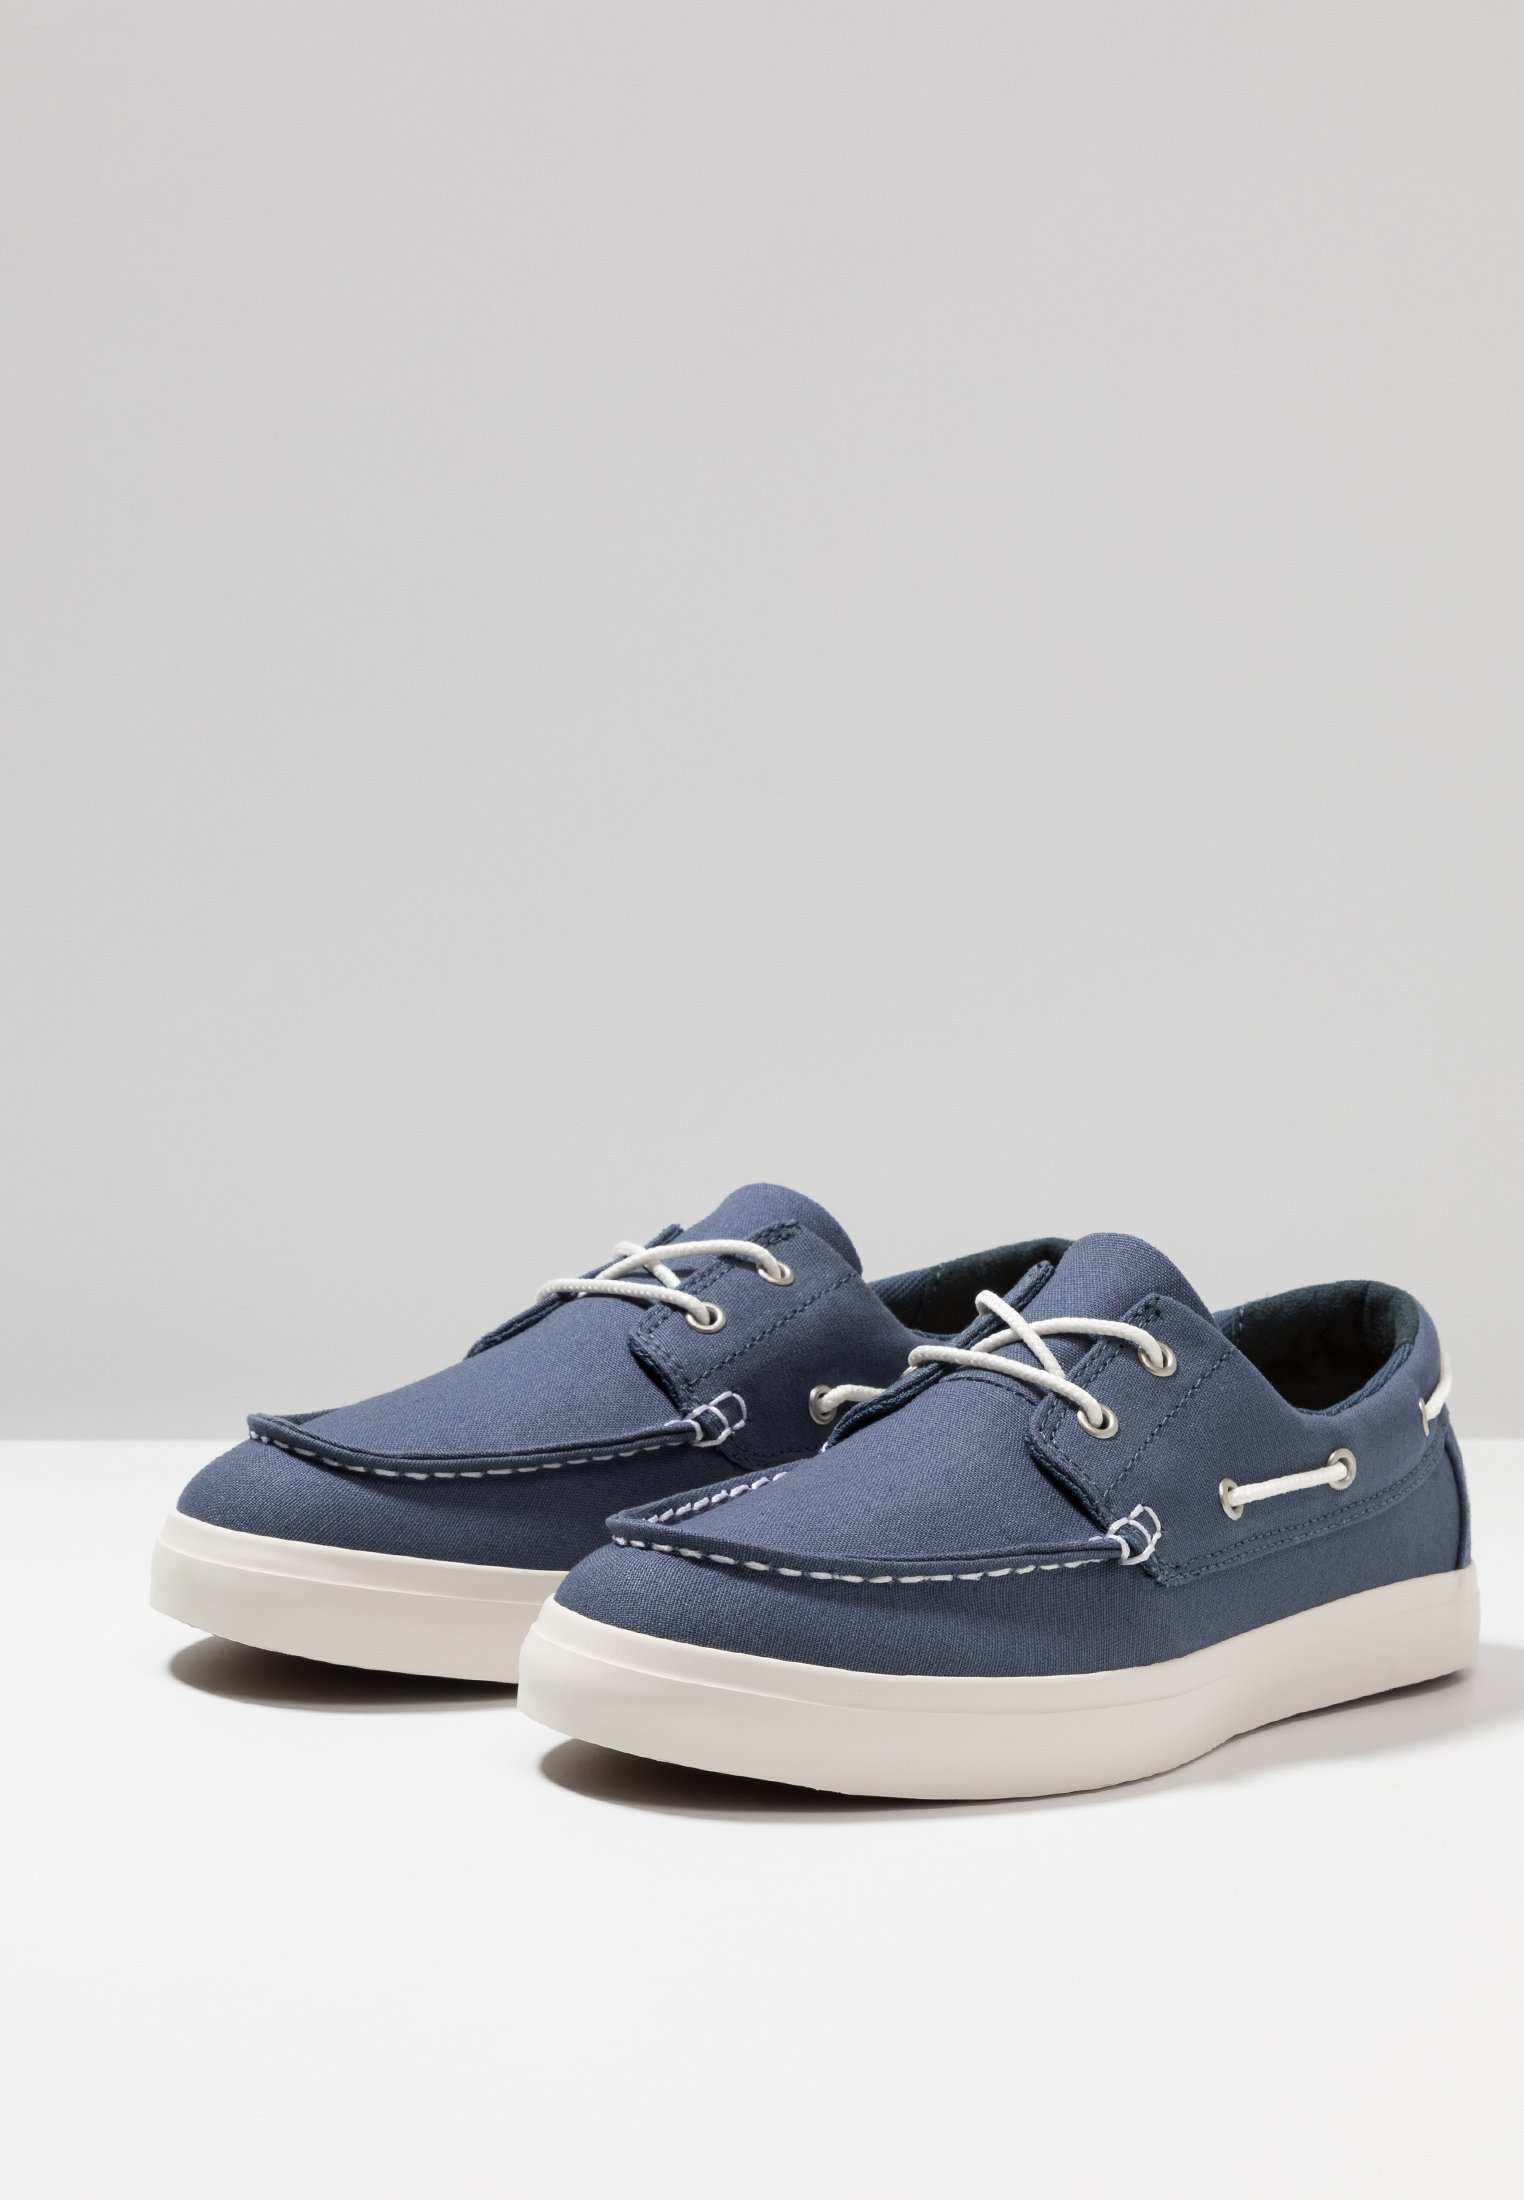 Timberland UNION WHARF 2 EYE - Buty żeglarskie - dark blue